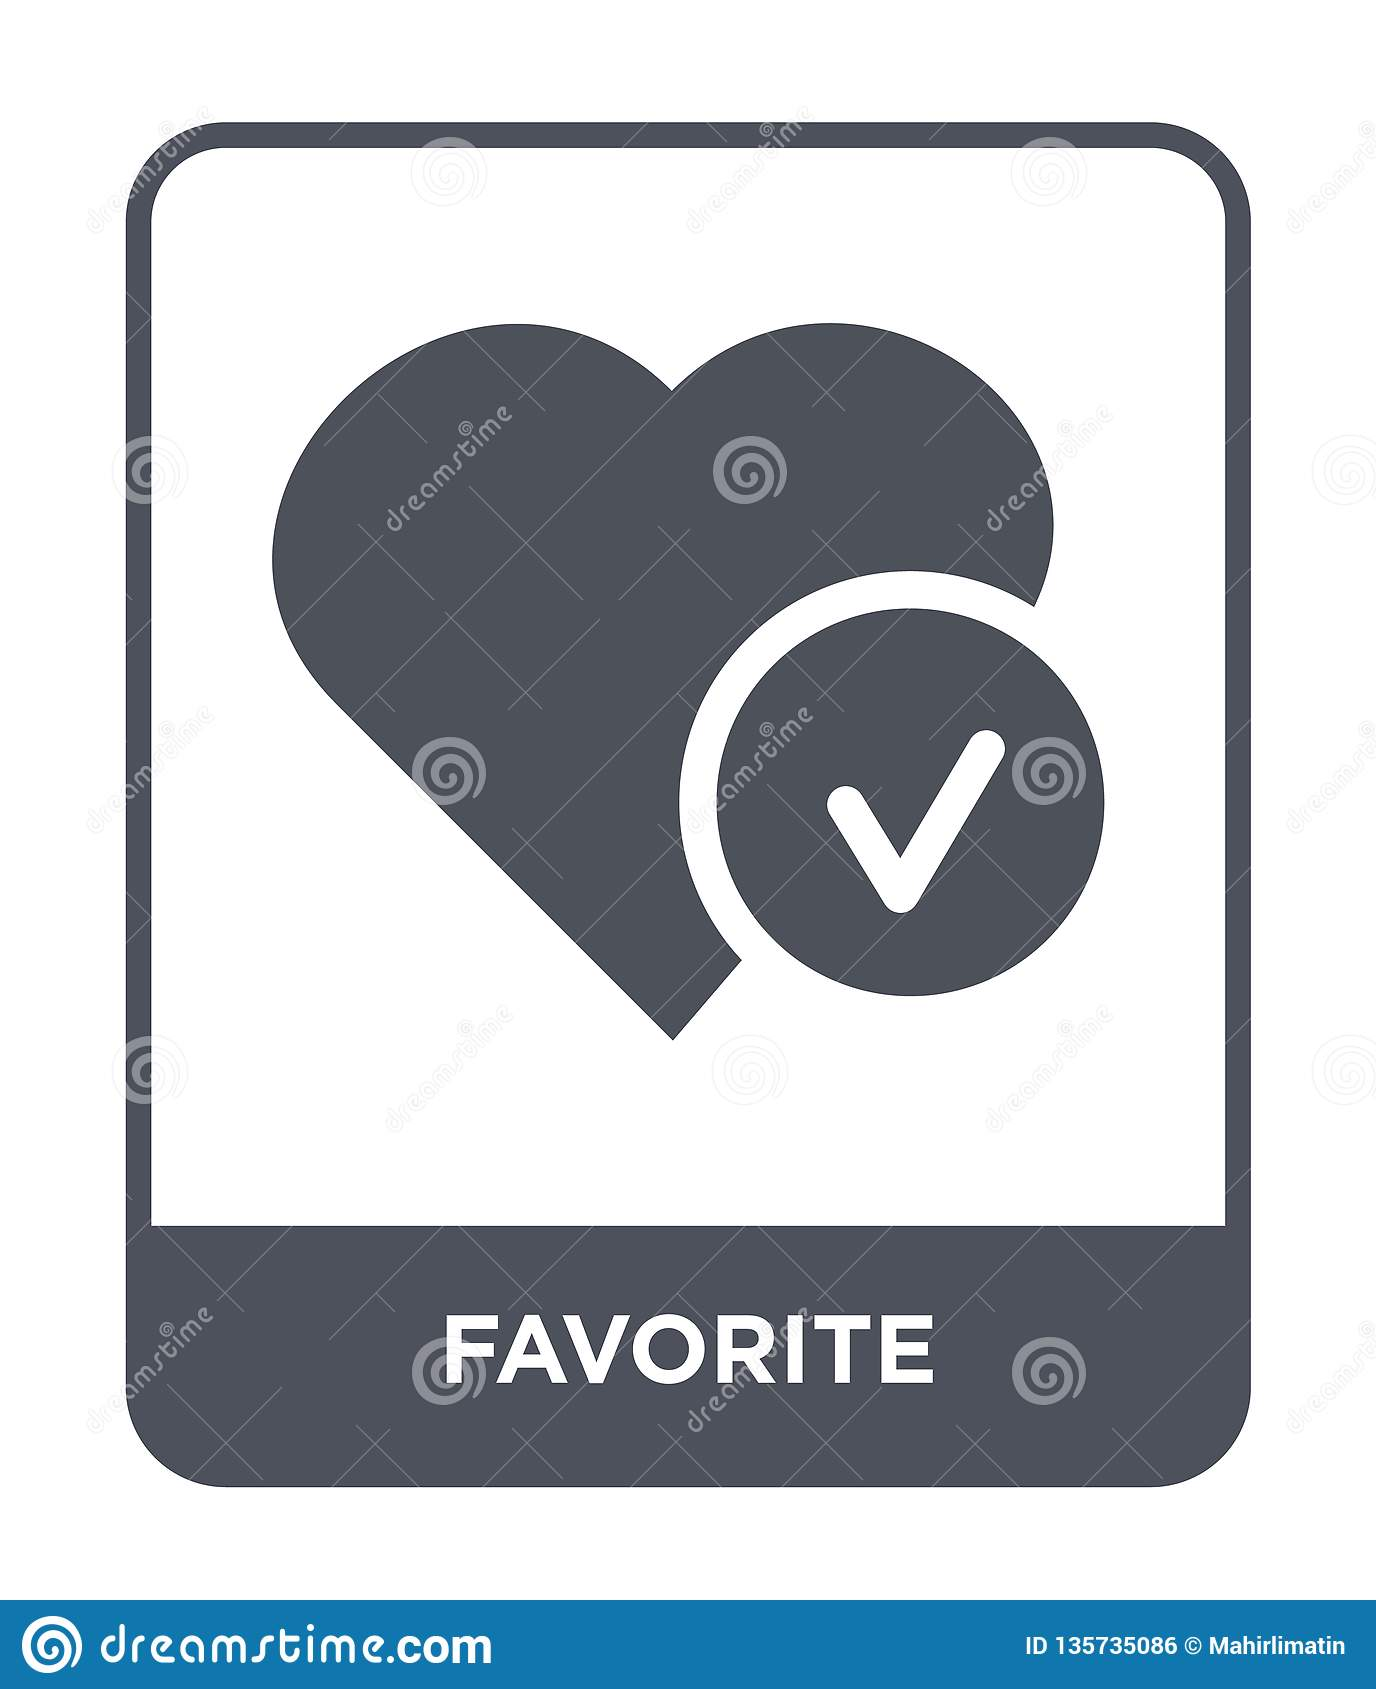 favorite icon in trendy design style. favorite icon isolated on white background. favorite vector icon simple and modern flat